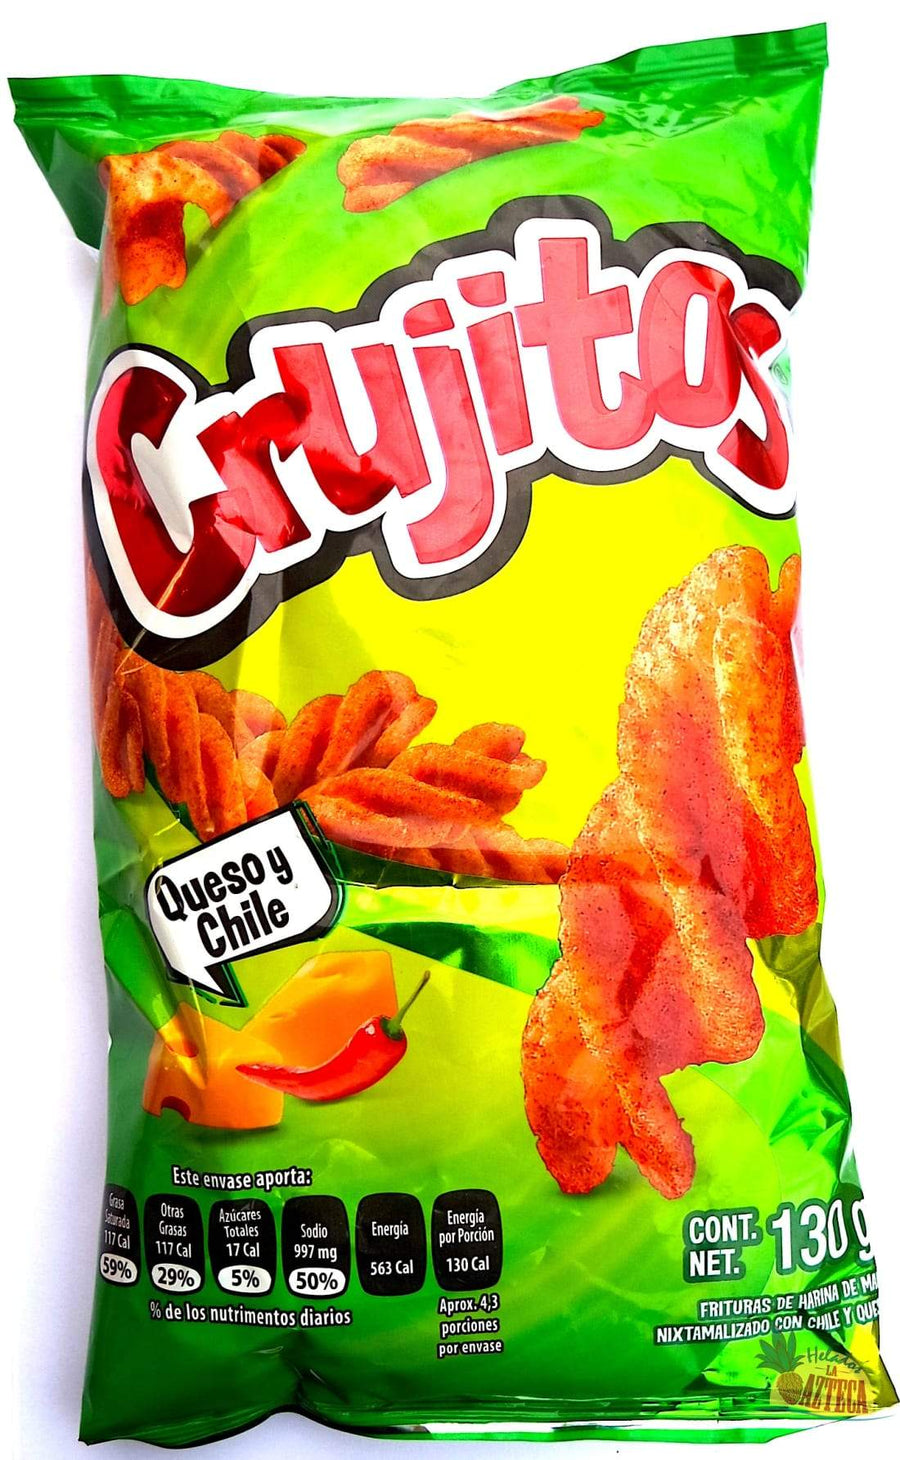 Sabritas Crujitos Chips 120g